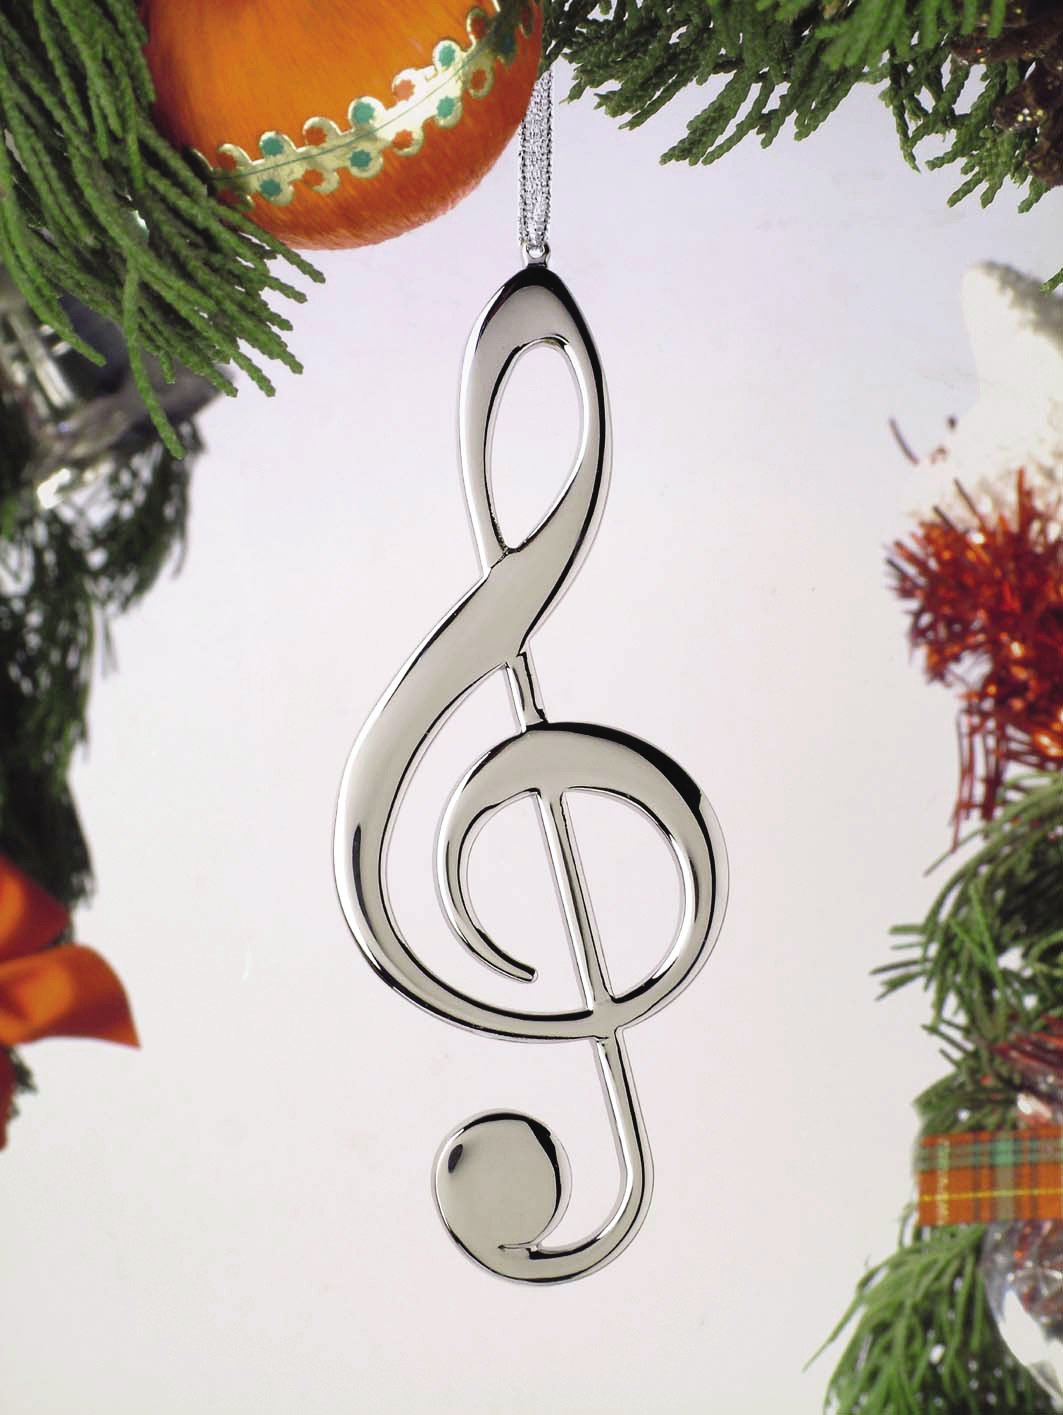 Treble Clef Ornament - Silver